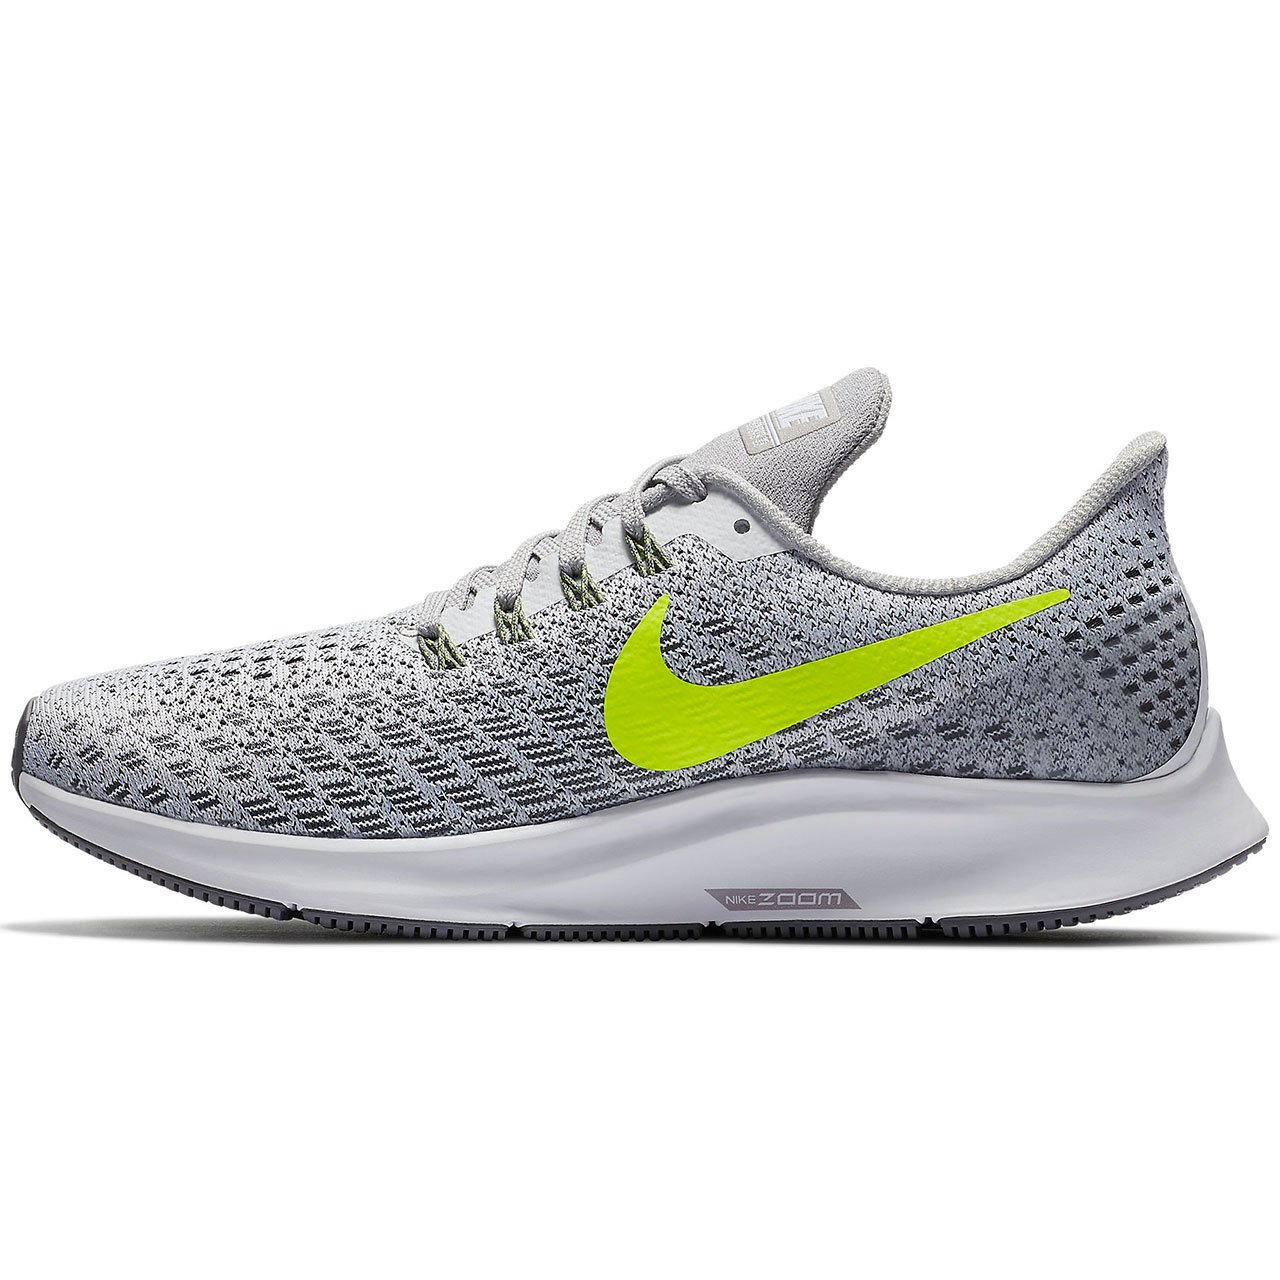 Nike Womens Air Zoom Pegasus 35 Running Shoes B078J7HLR4 11 B(M) US|White/Volt-gunsmoke-atmosphere Grey